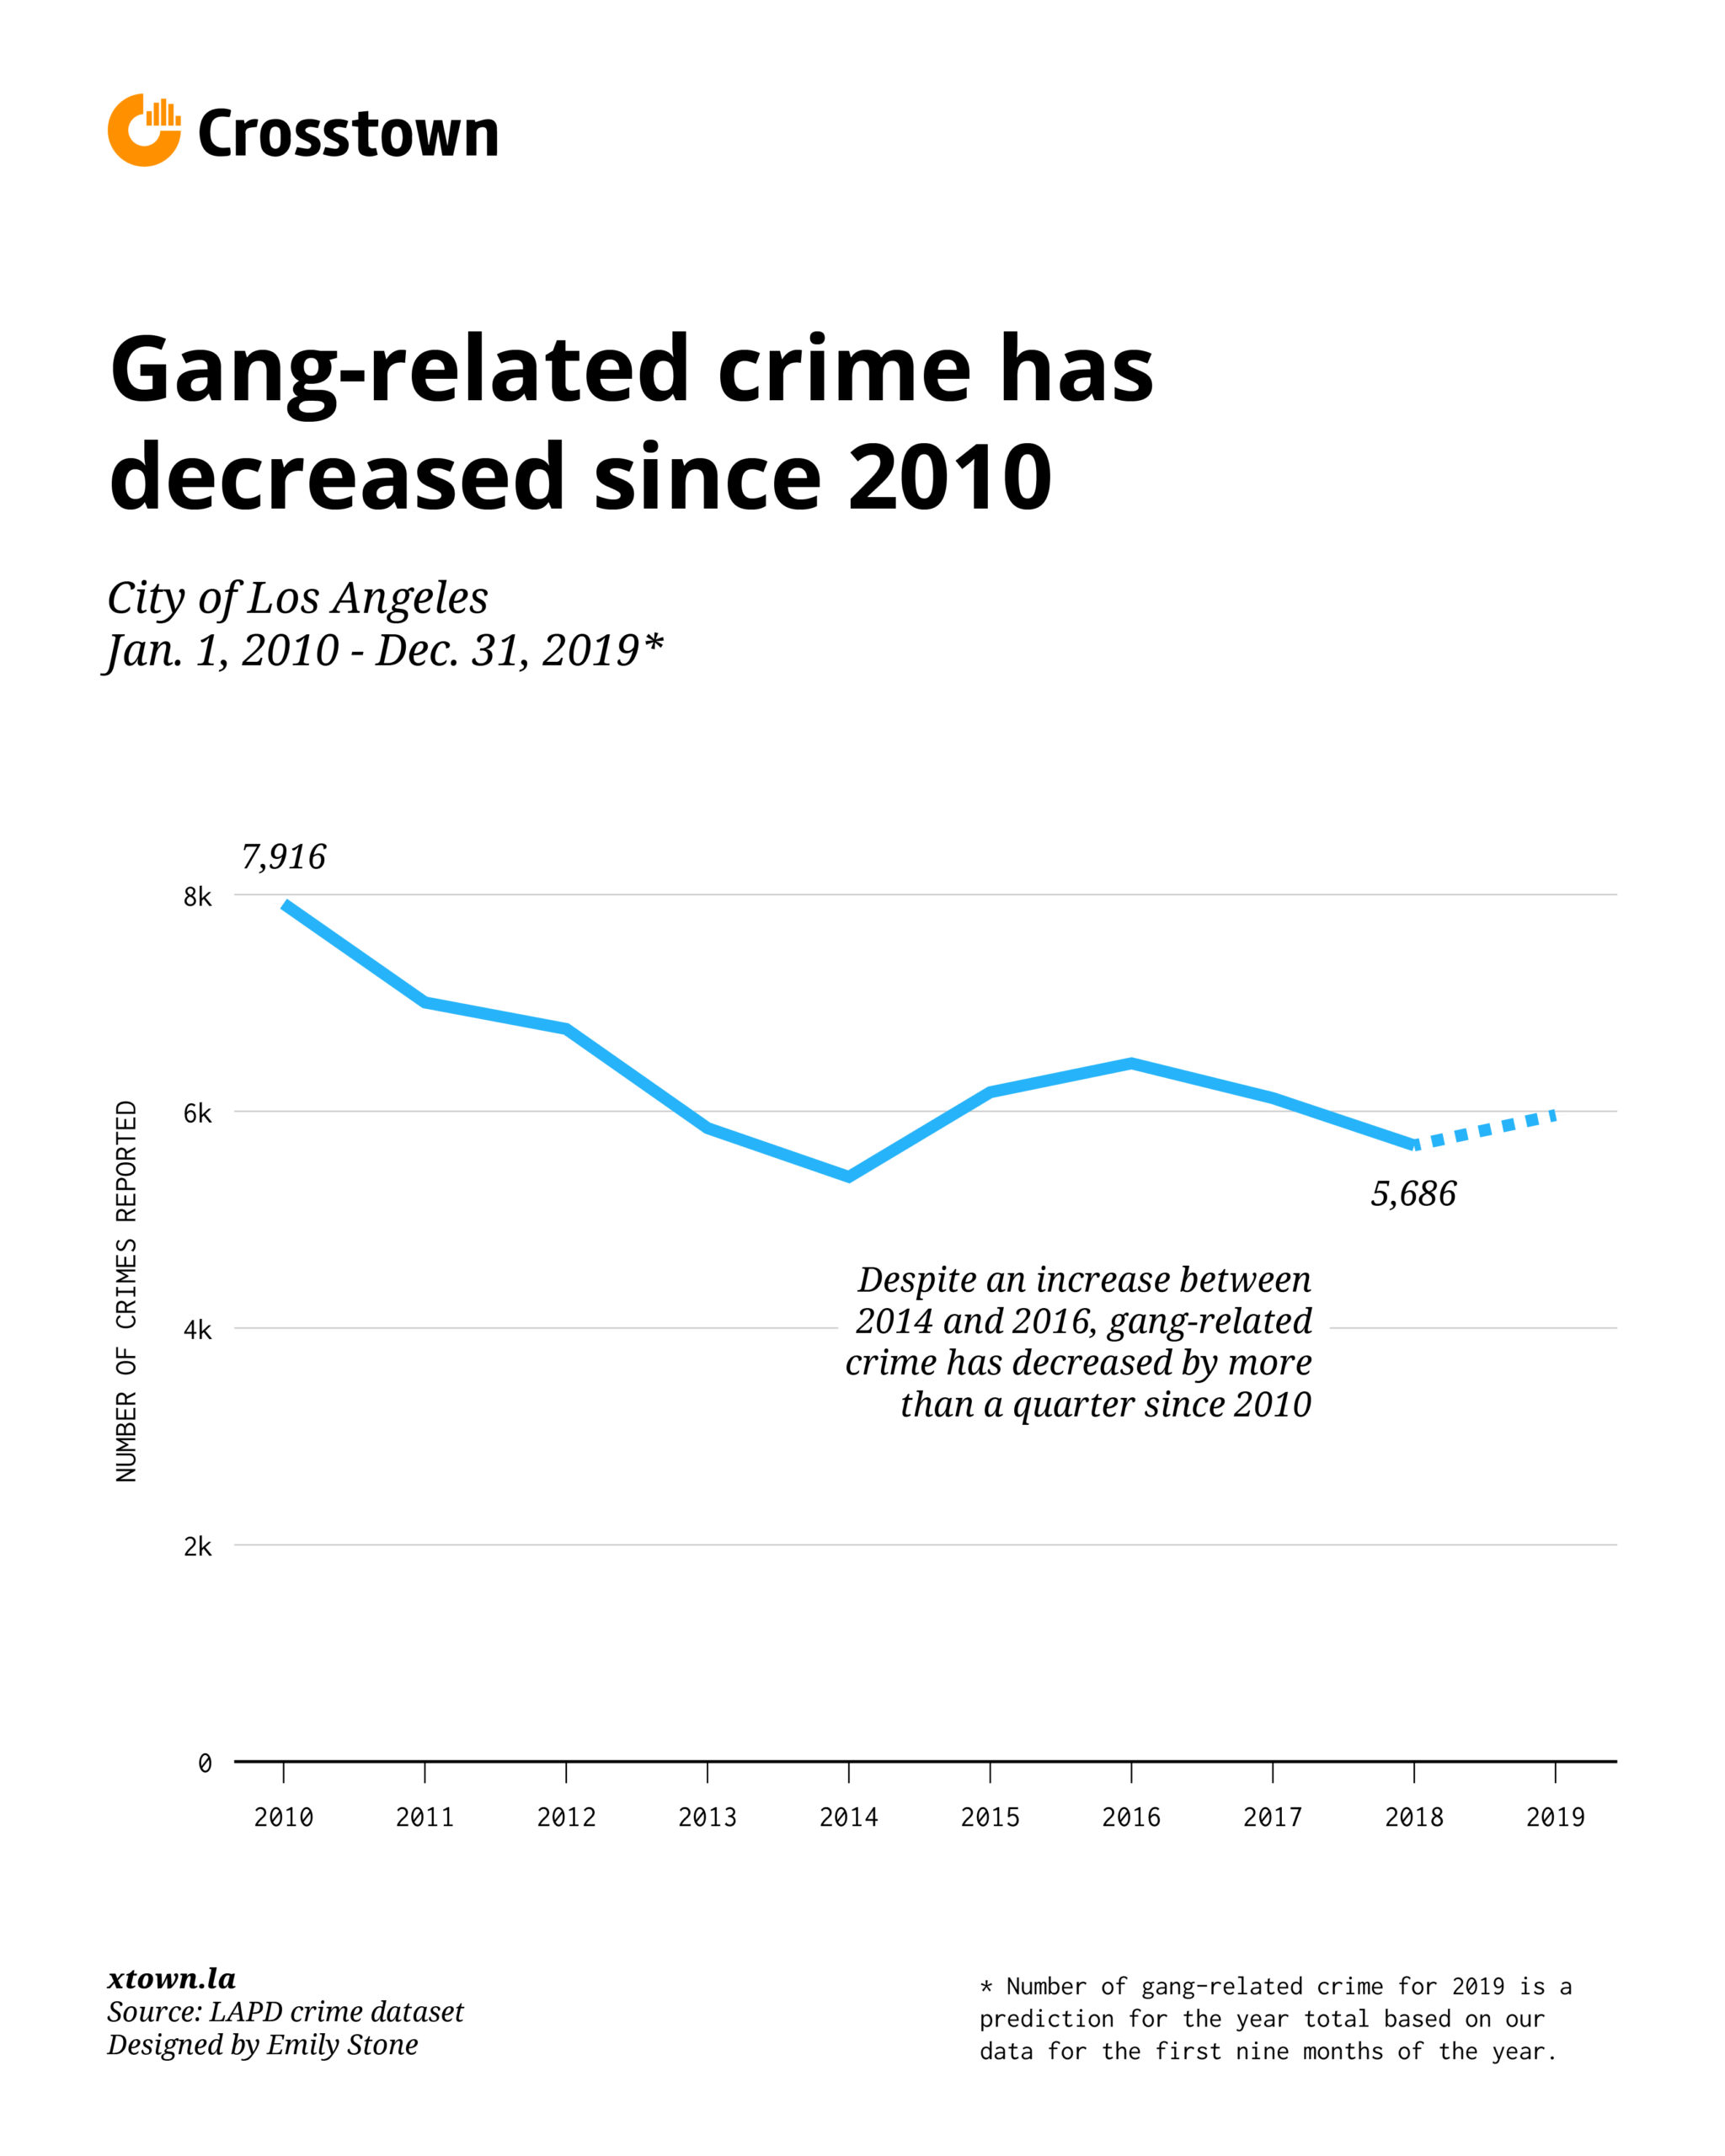 gang violence down in Los Angeles since 2010